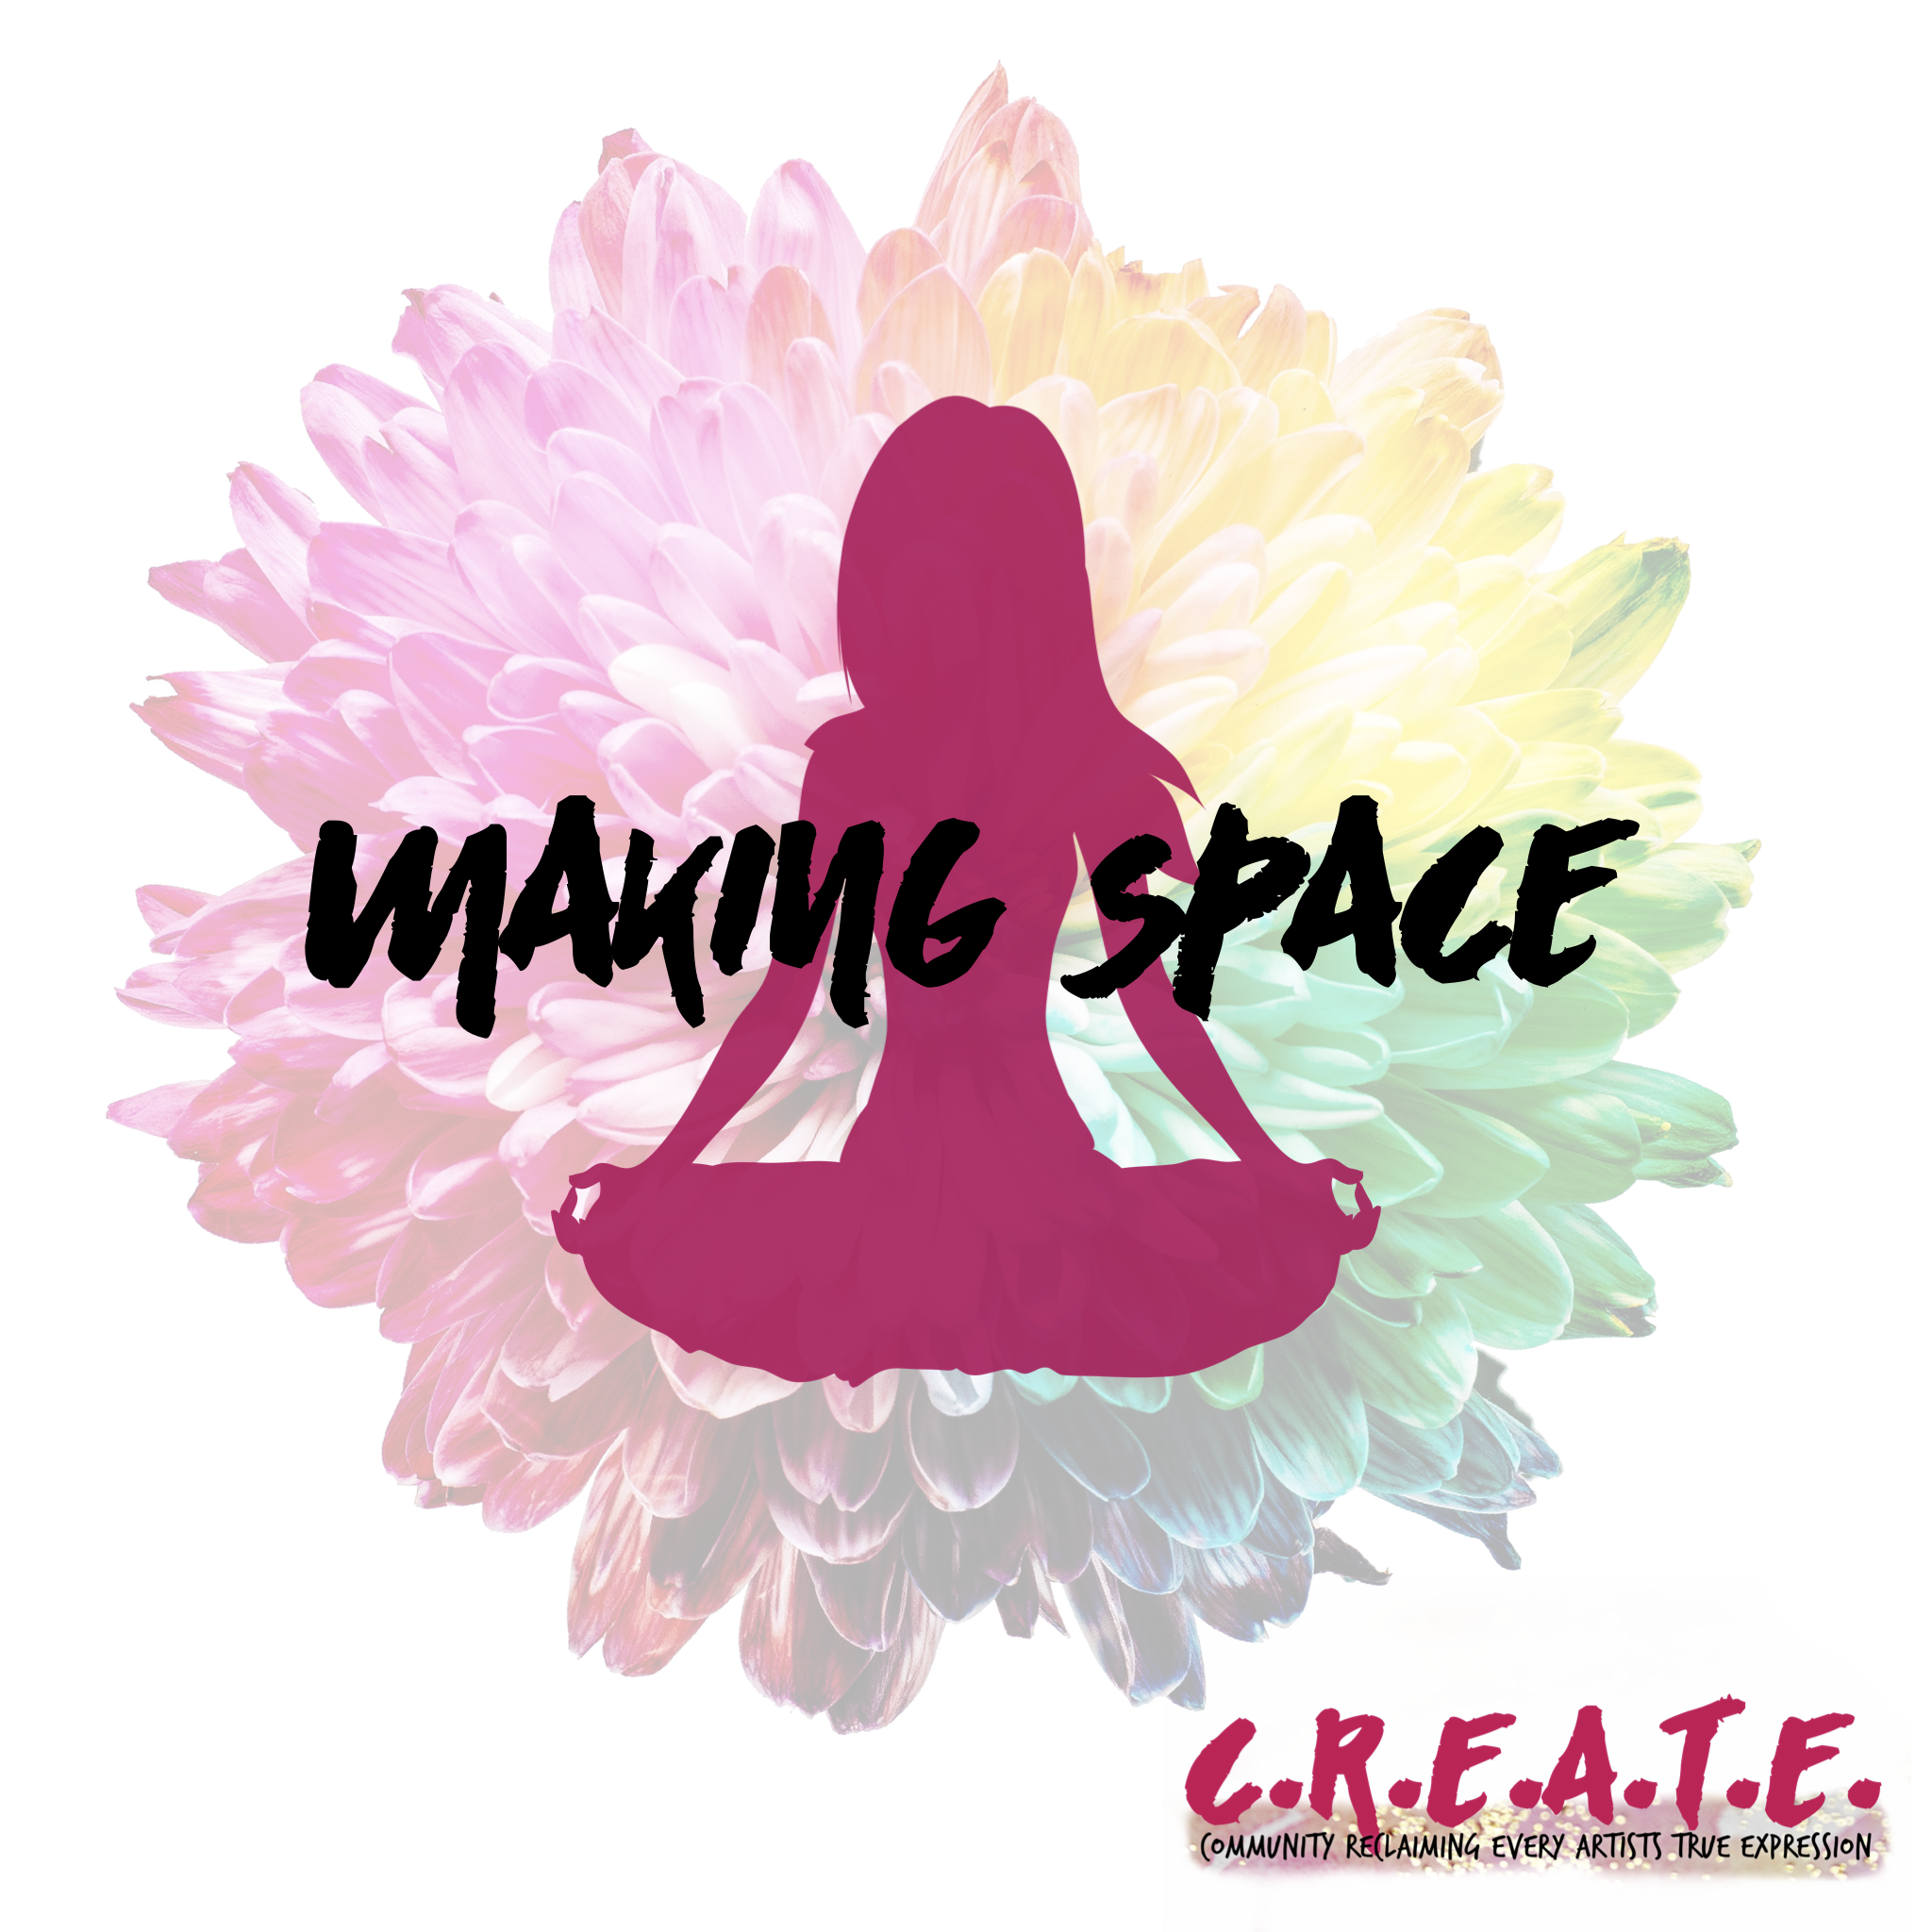 Making Space - $1.99 - Click Image To Purchase!